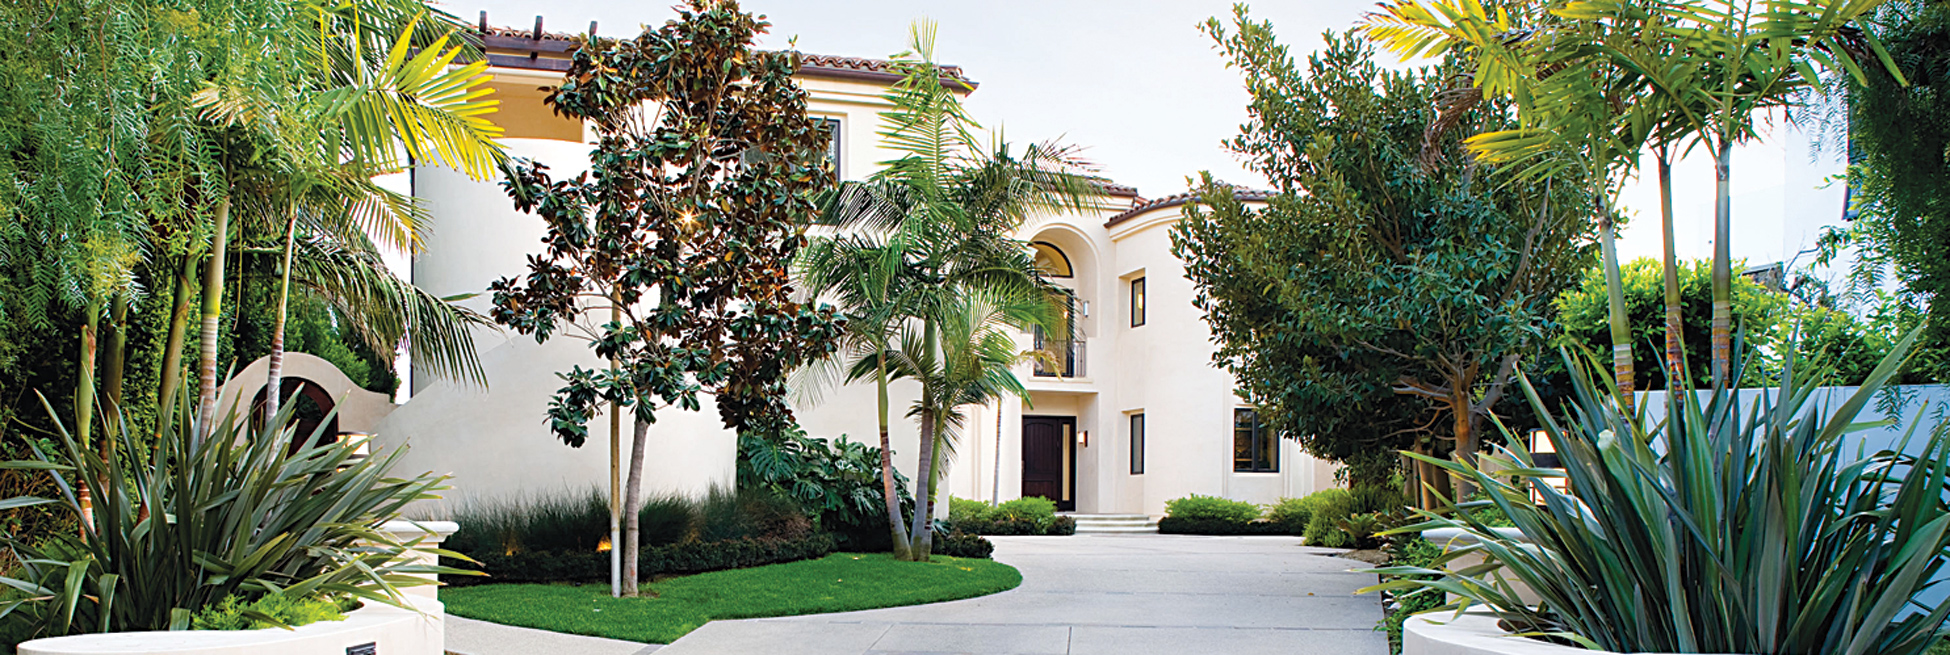 Jane Siegal, Luxury Real Estate, Los Angeles | Serving Beverly Hills, Los  Angeles, Luxury Real Estate